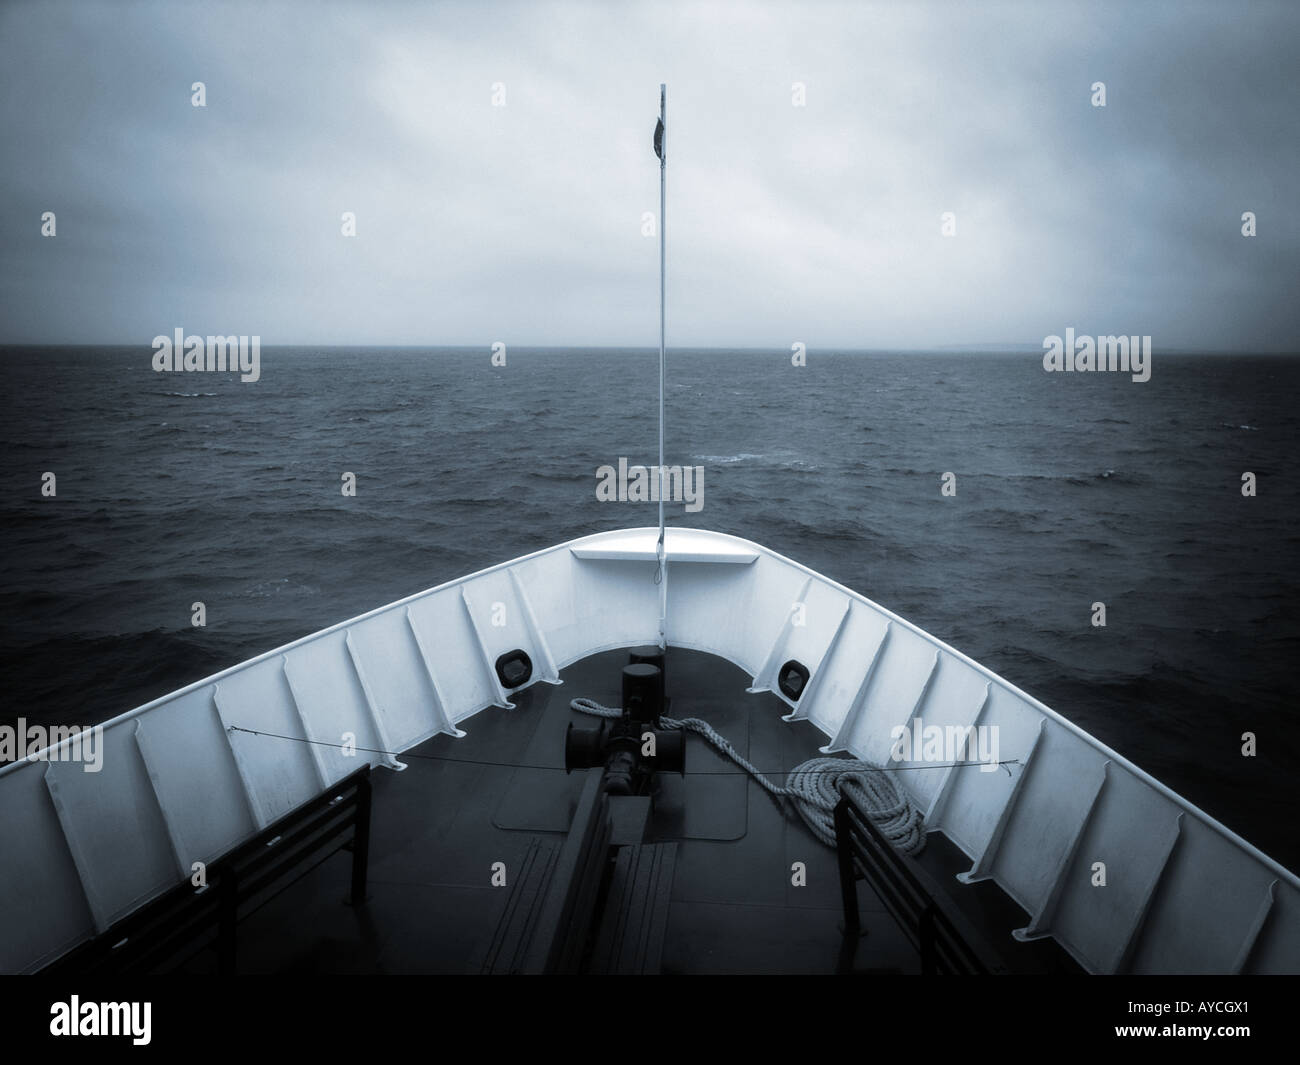 The bow of a ship headed out to stormy overcast sea - Stock Image